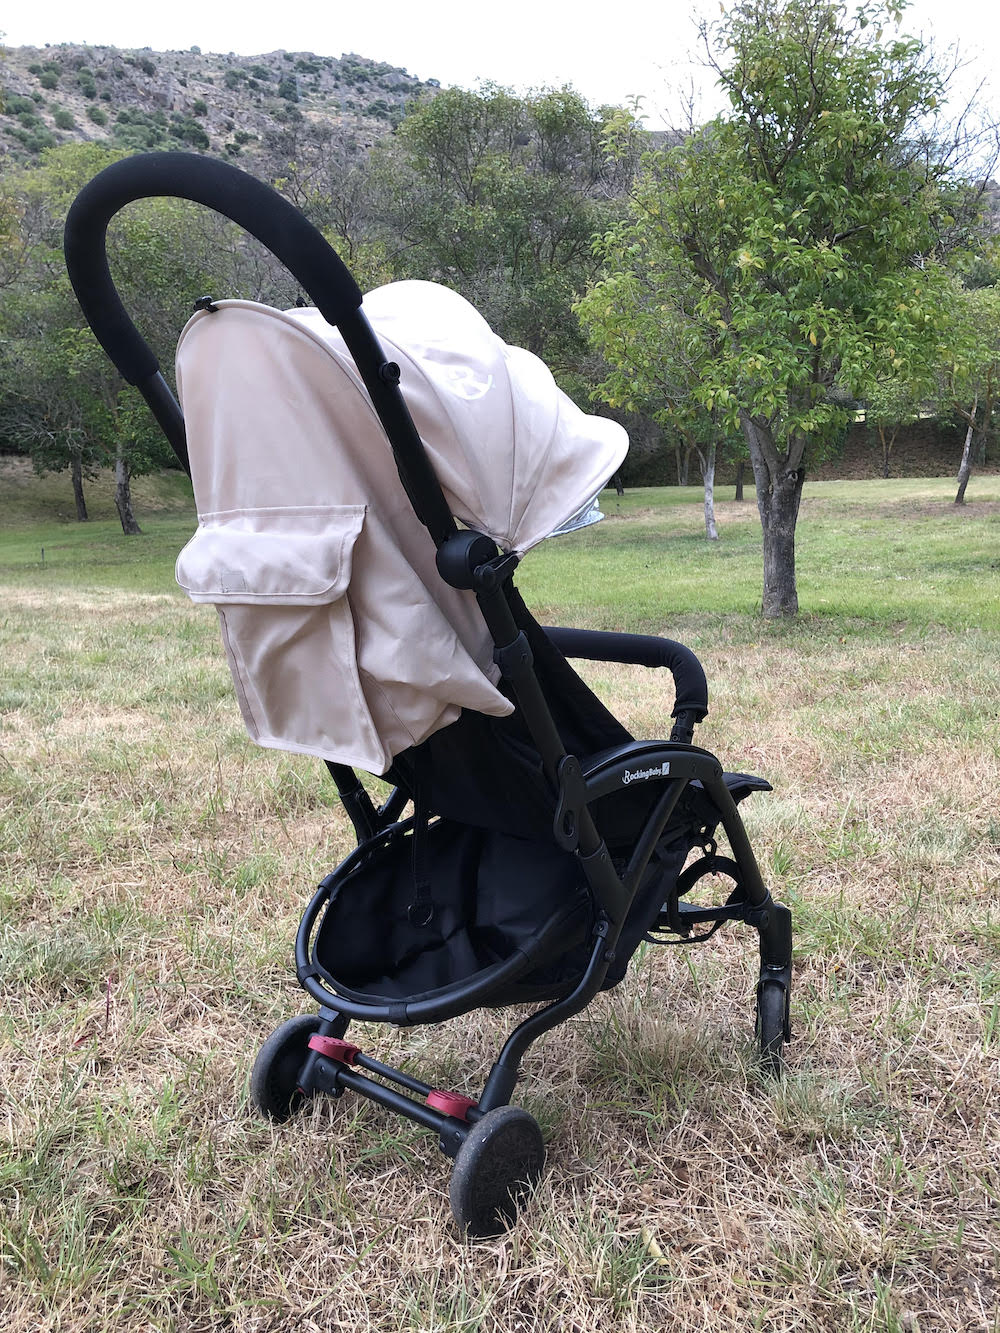 review silla de paseo pocket rocking baby